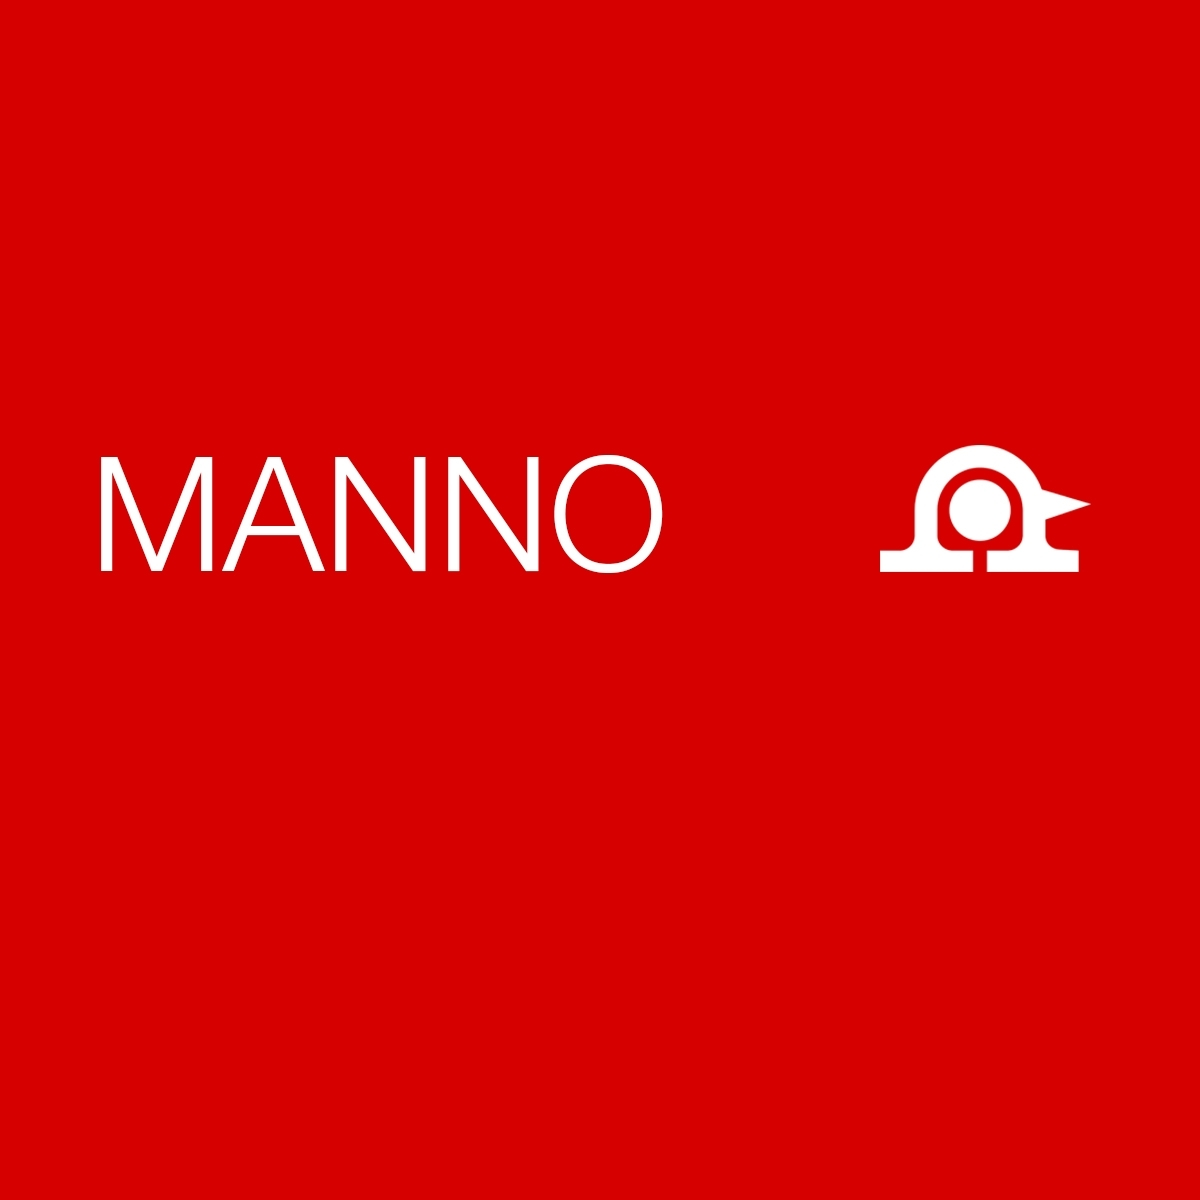 manno nightingale chairs. Black Bedroom Furniture Sets. Home Design Ideas